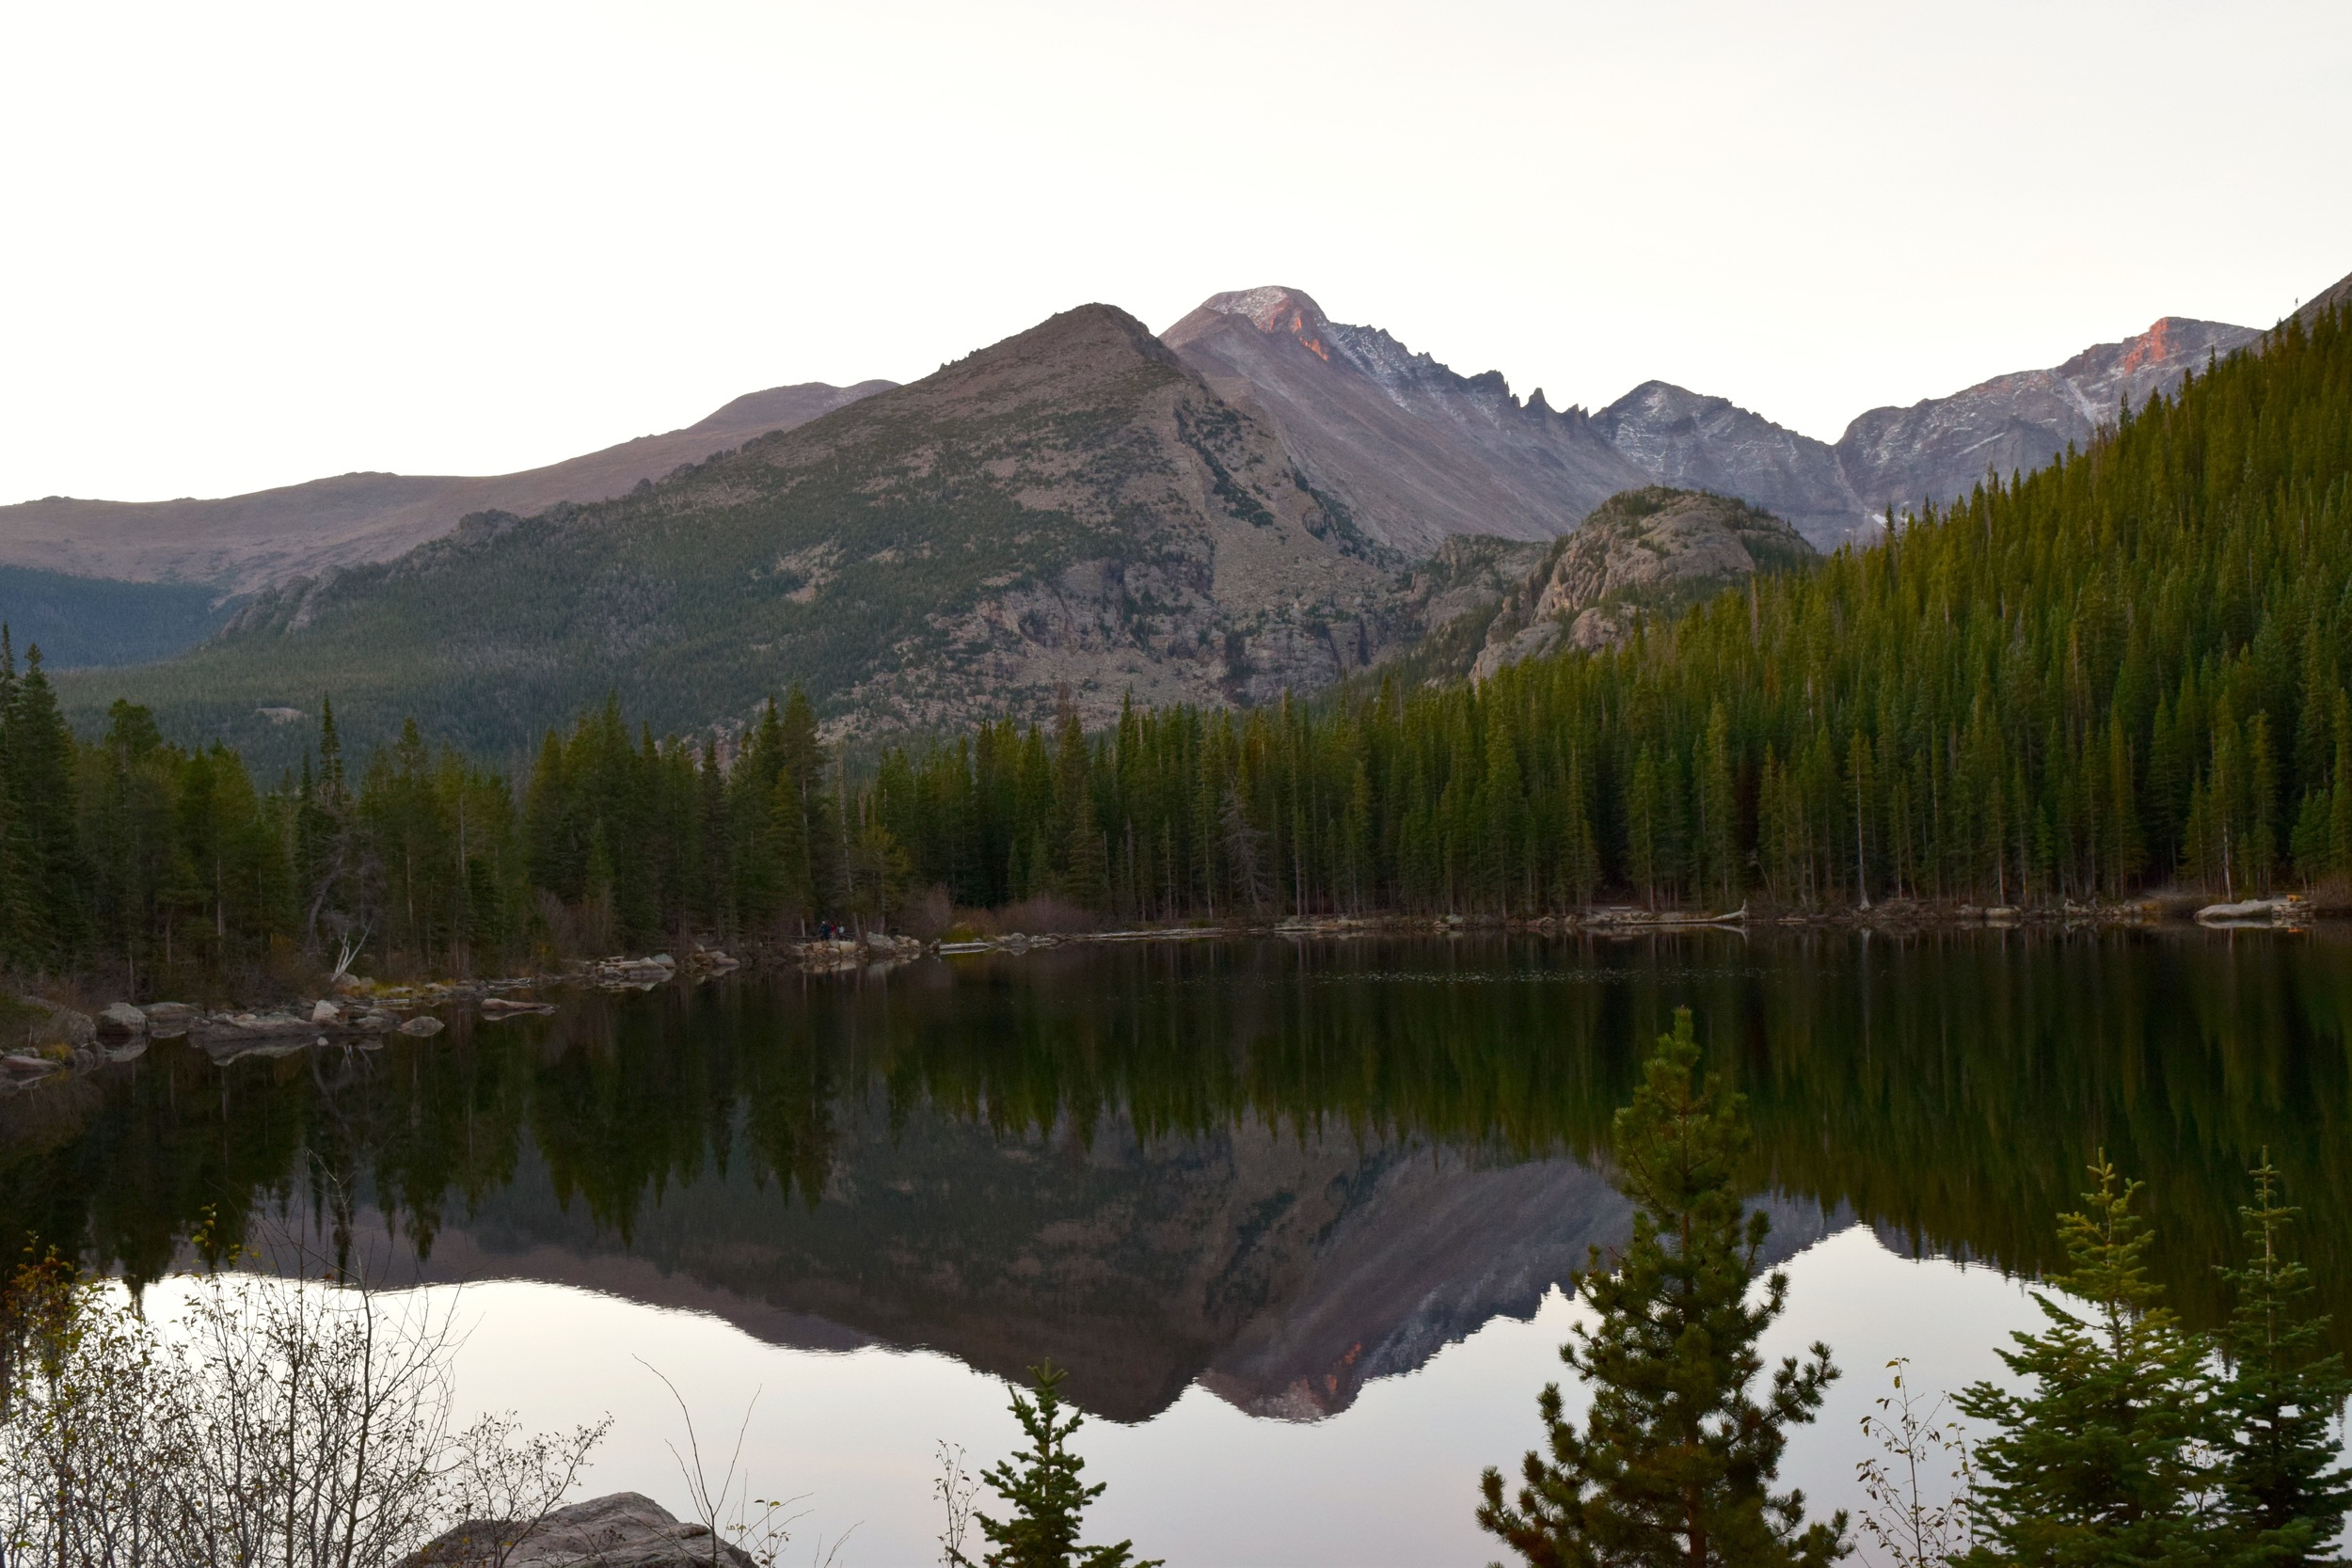 Golden hour lighting, alpenglow on the distant mountains, and a perfectly still lake.